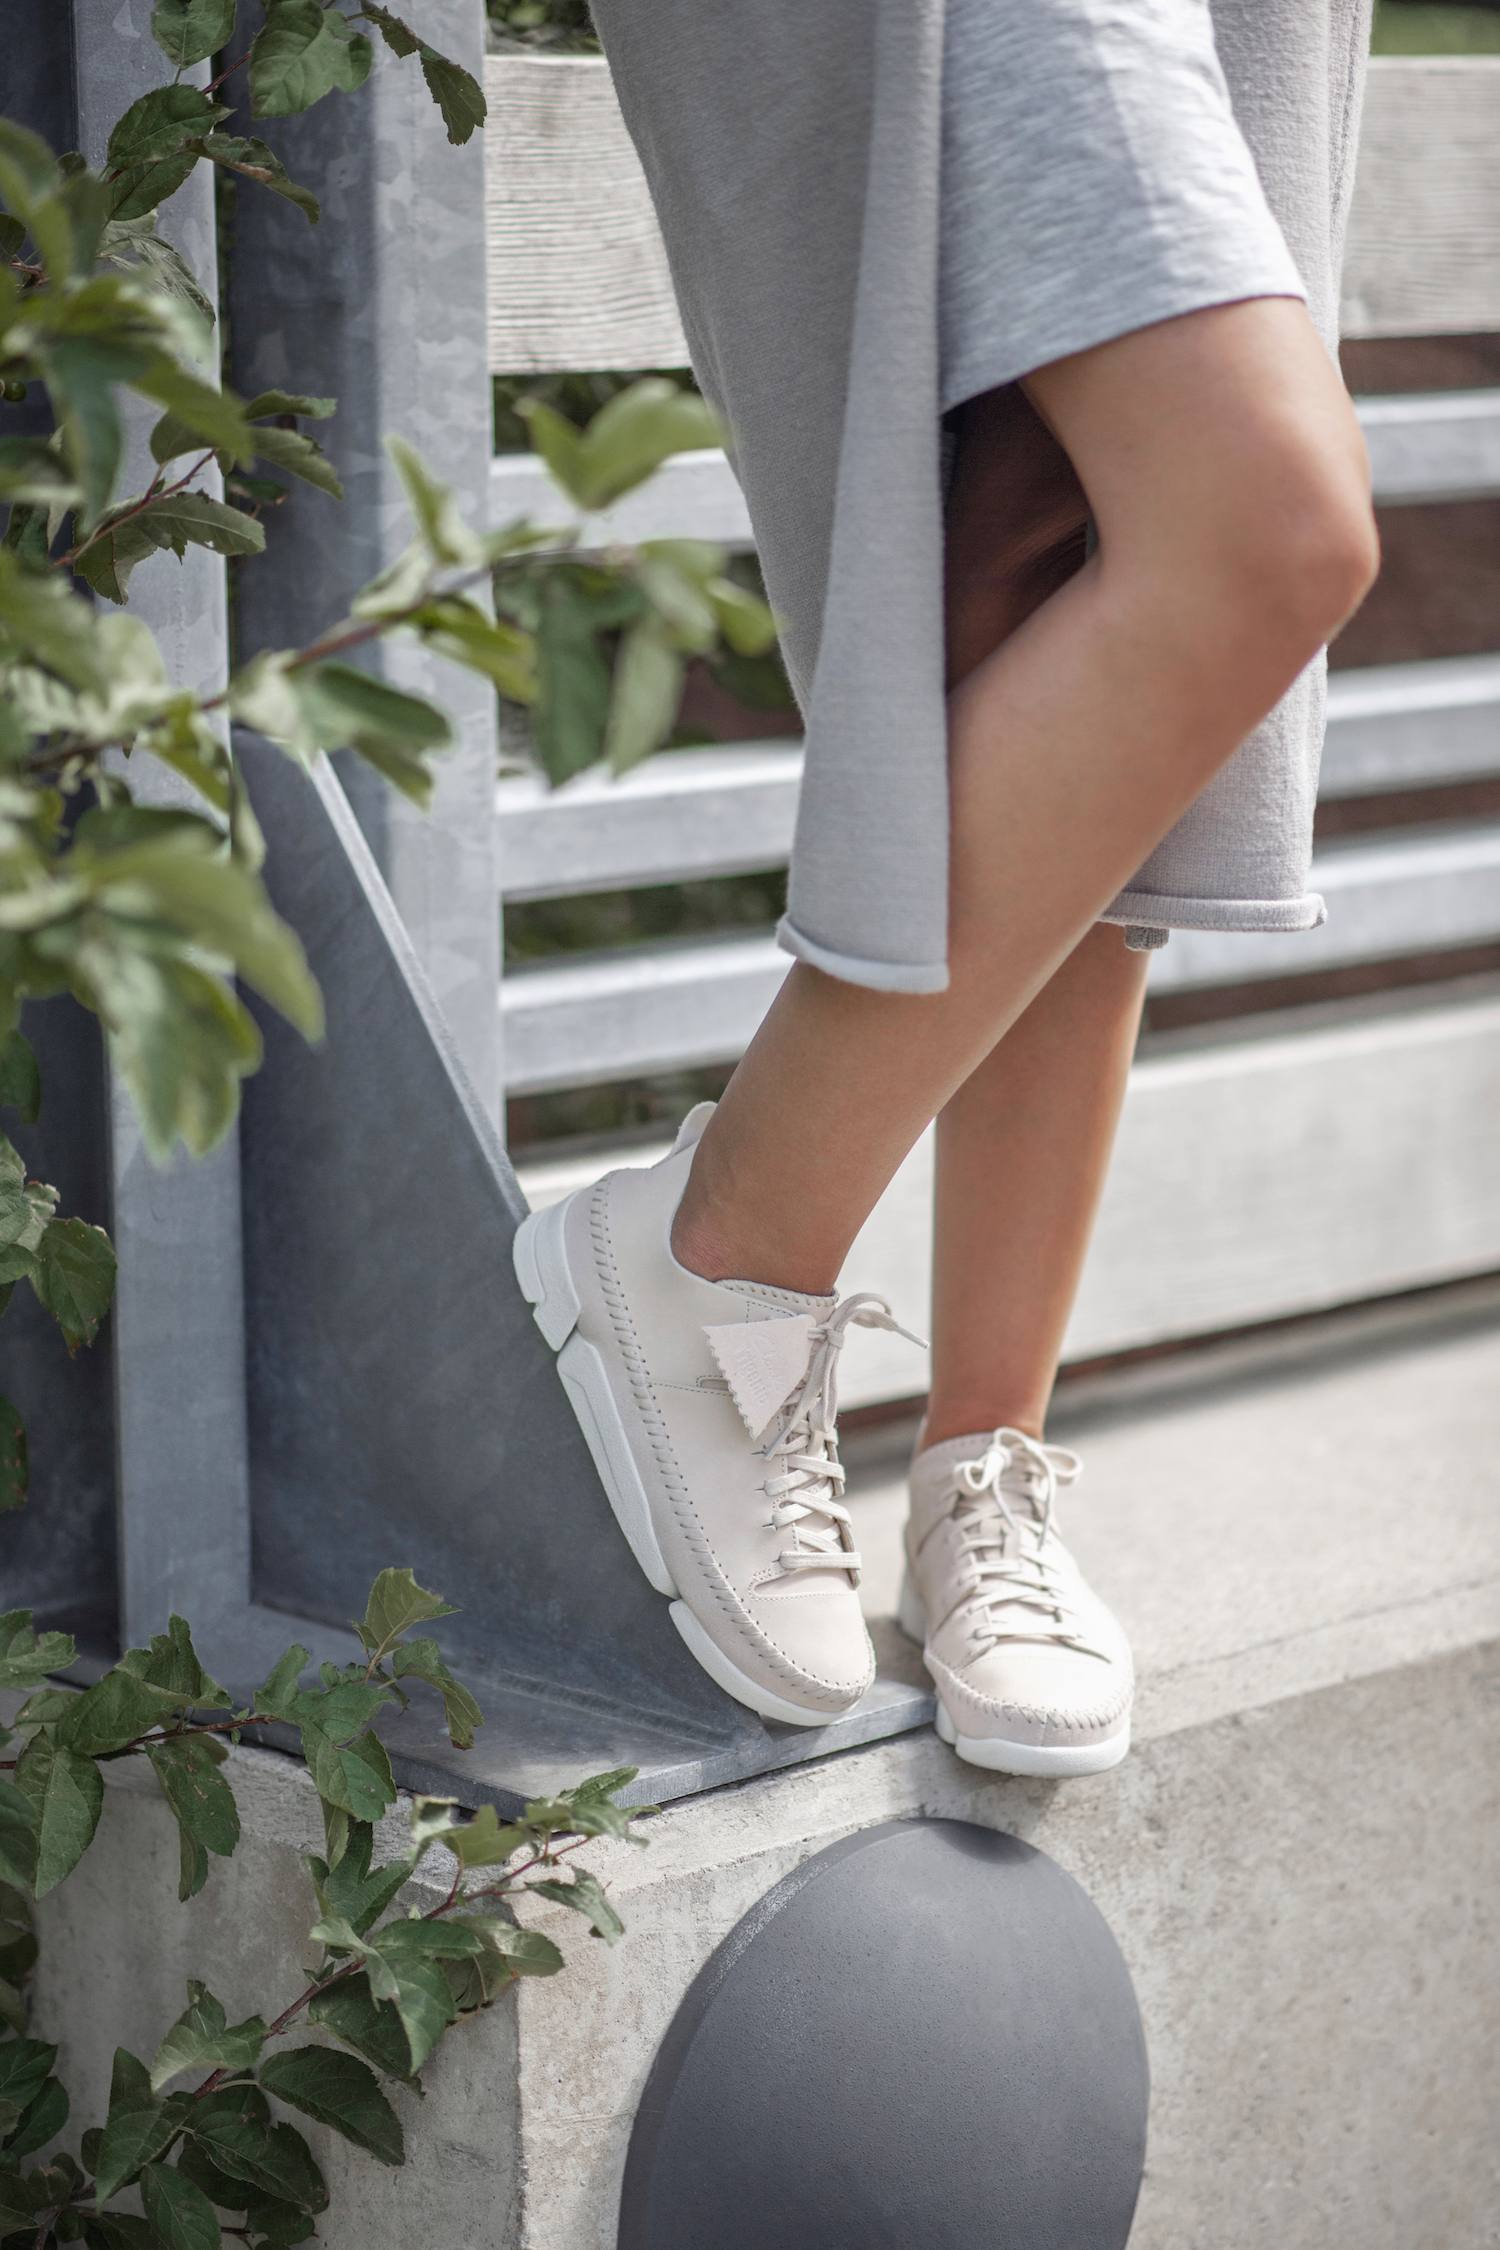 f615626e24f5f The Clarks Mashup is something truly close to my heart because I've been  brought on to lend my aesthetic, my style sense and storytelling ability to  the ...